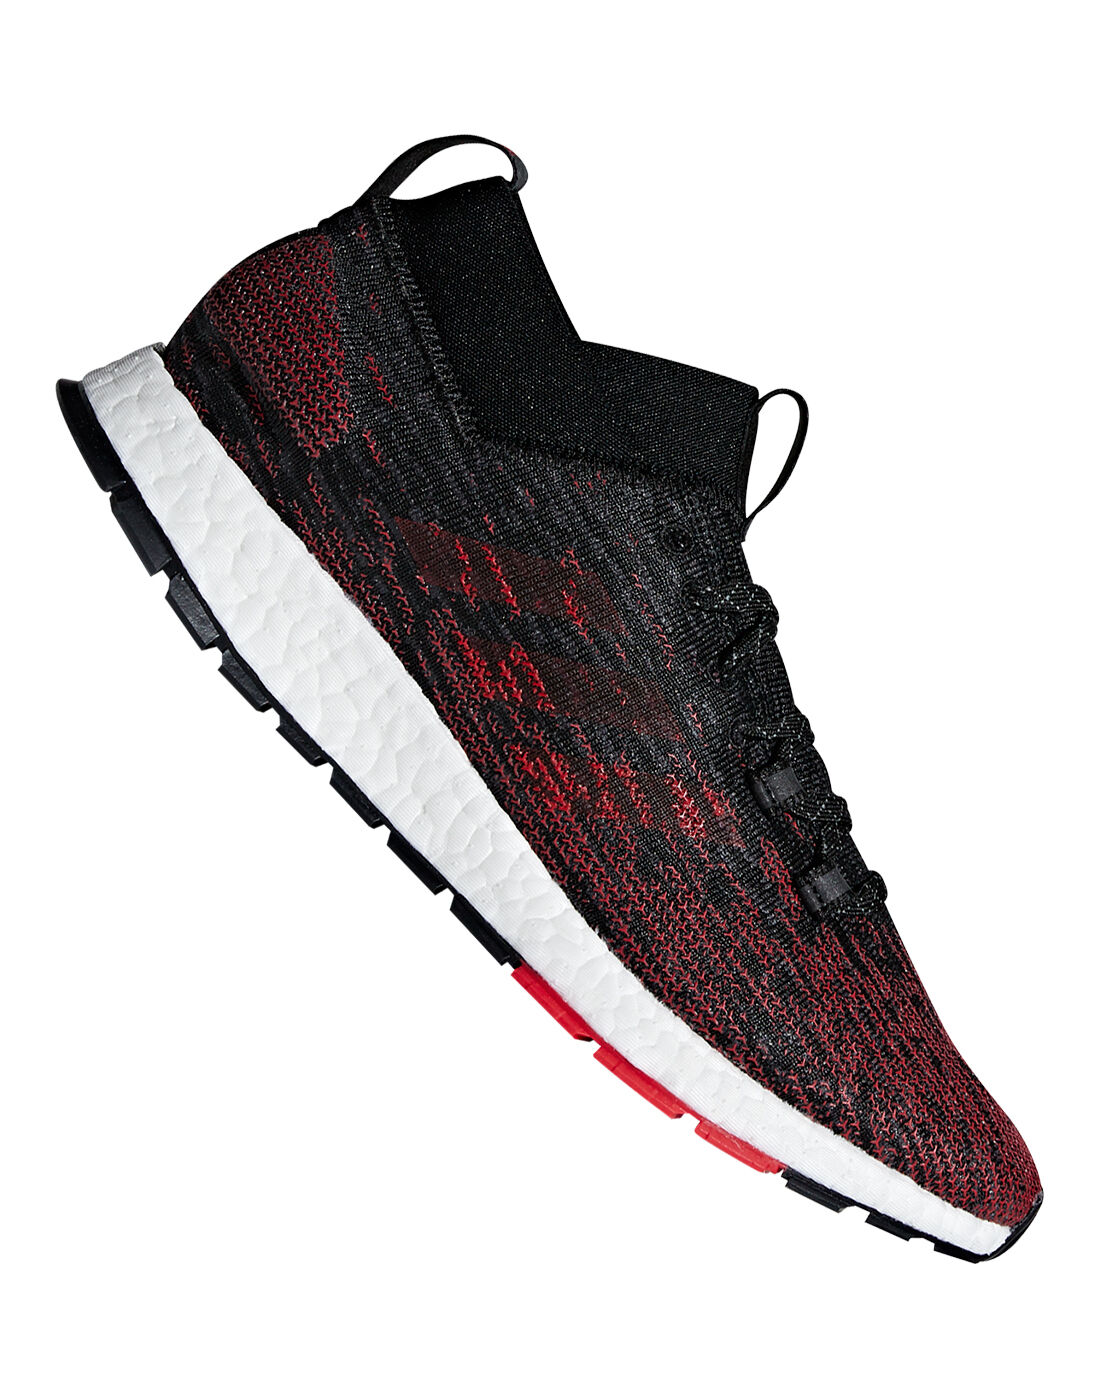 Blackamp; Men's Running ShoesLife Red Style Adidas Pureboost Sports xCreQdBoW